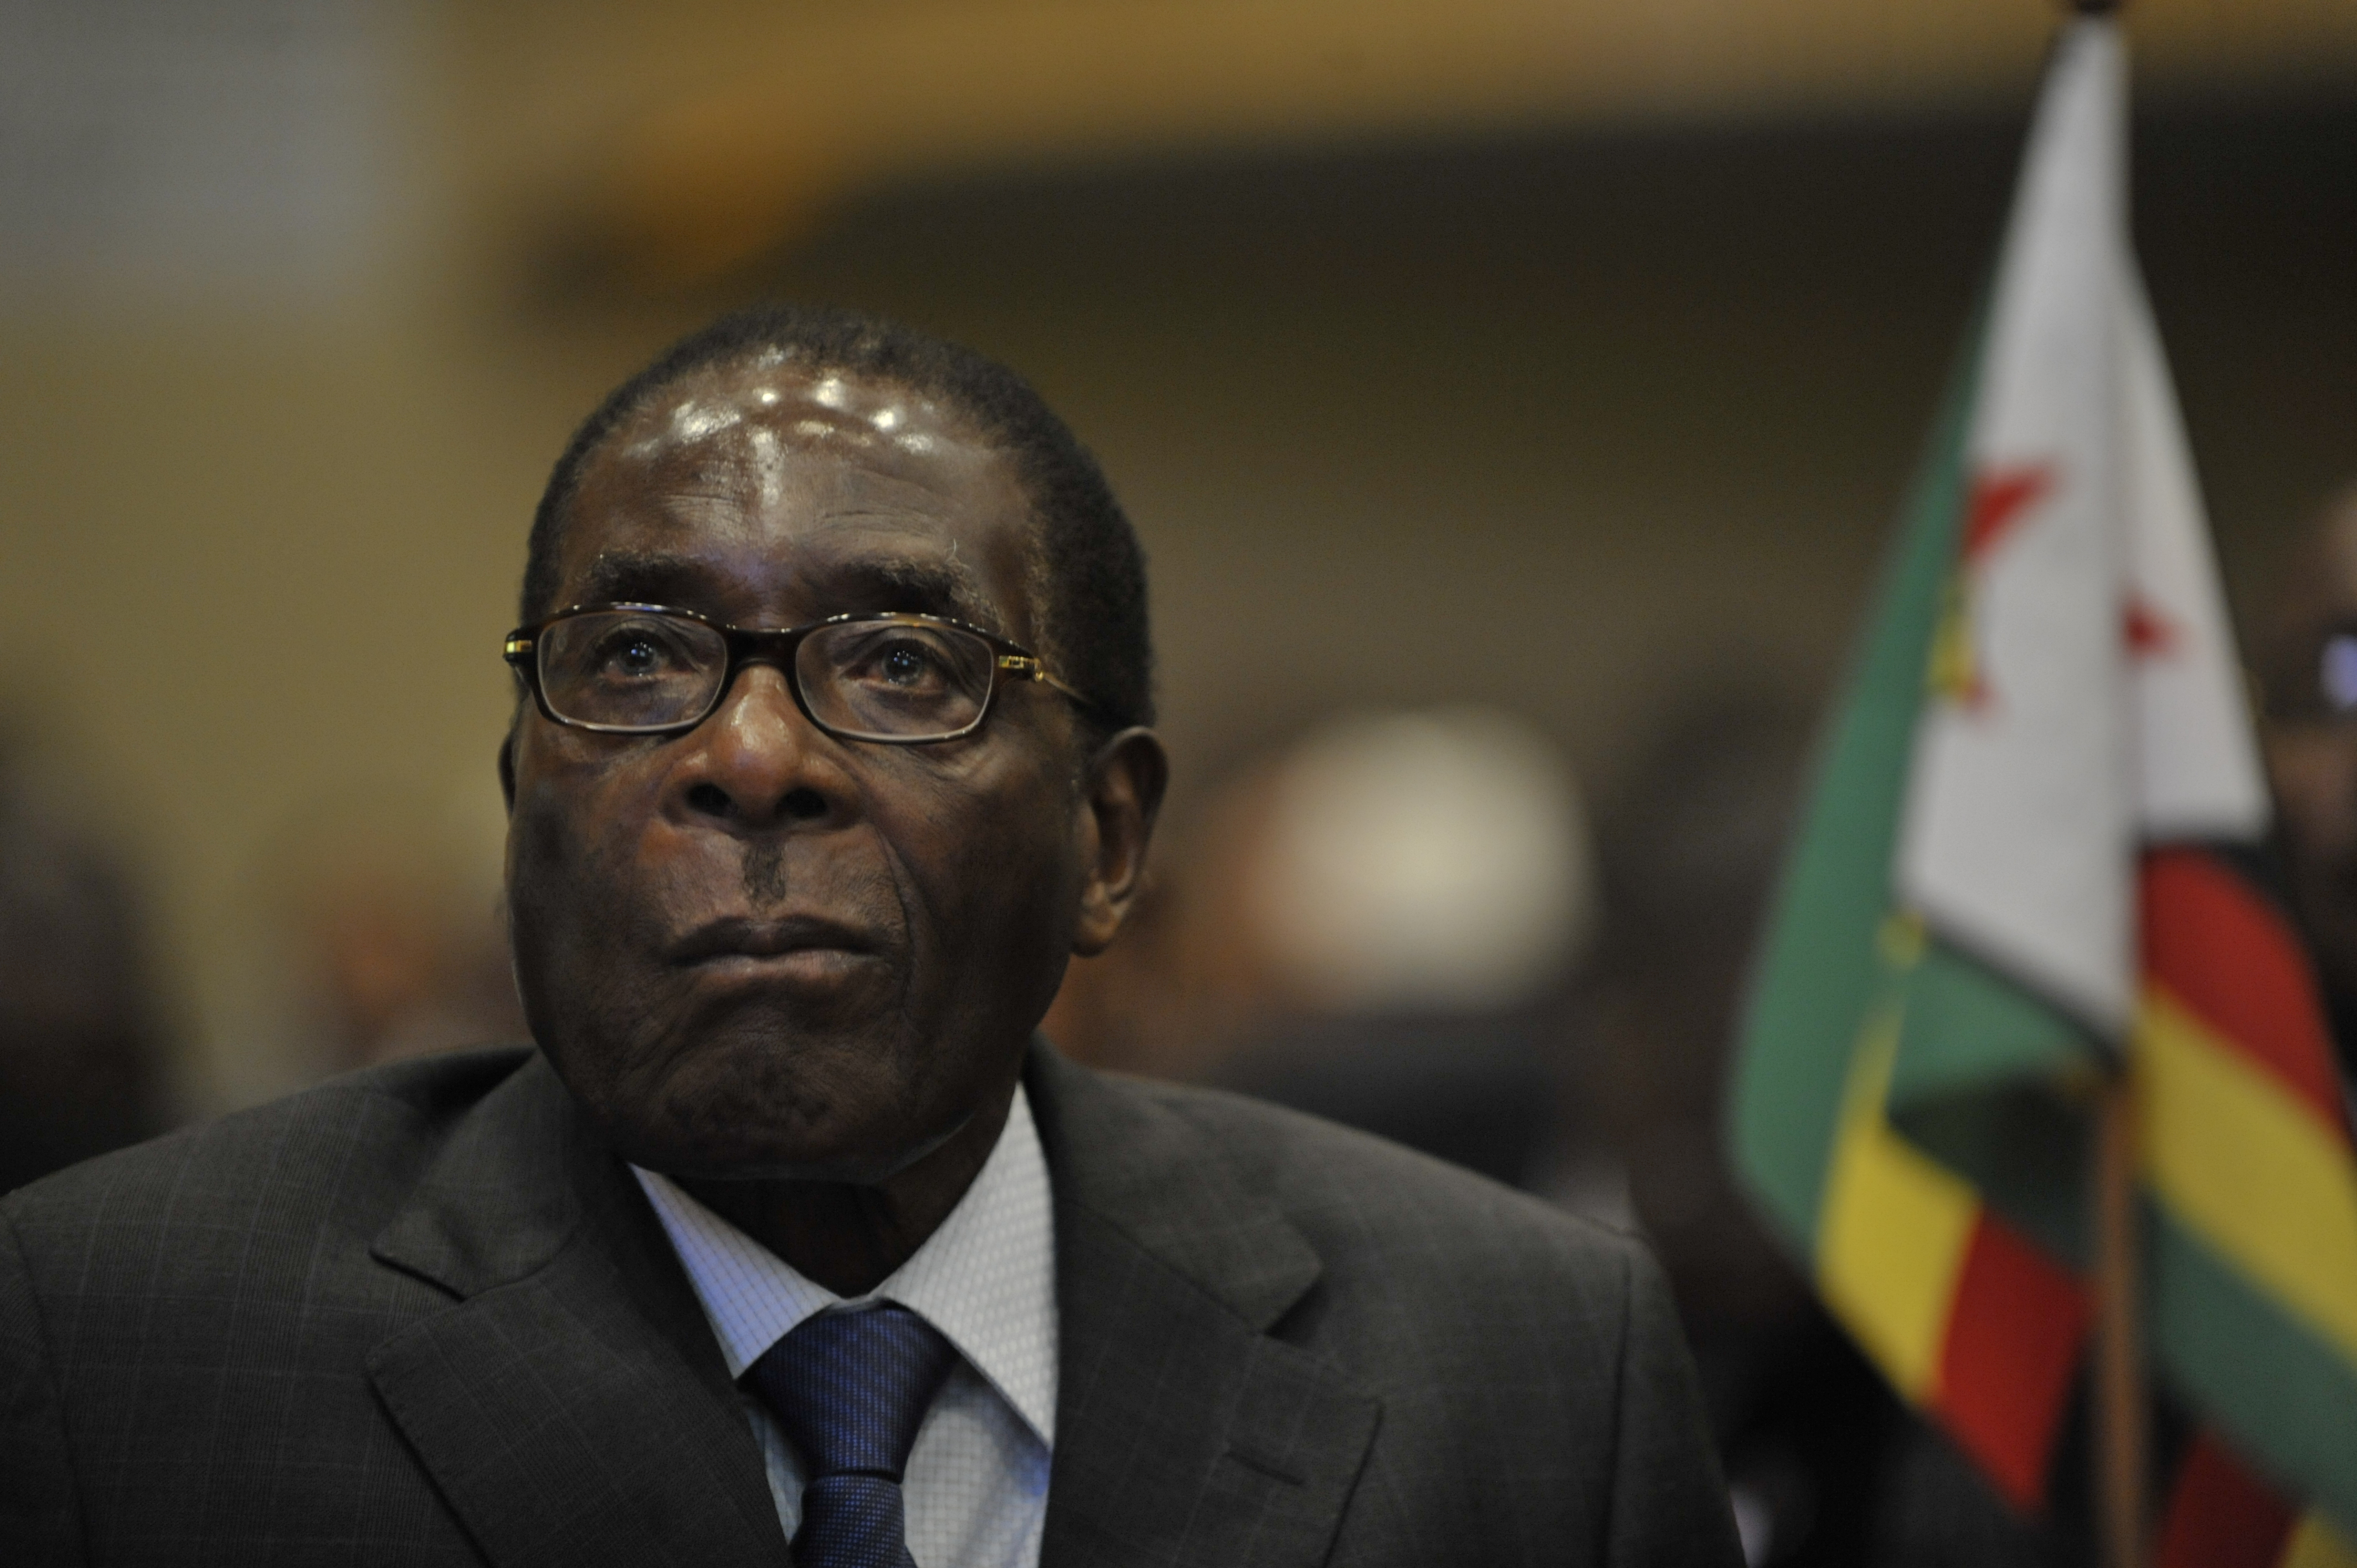 Lessons from Zimbabwe: Neo-Coup D'états and Africa's Future